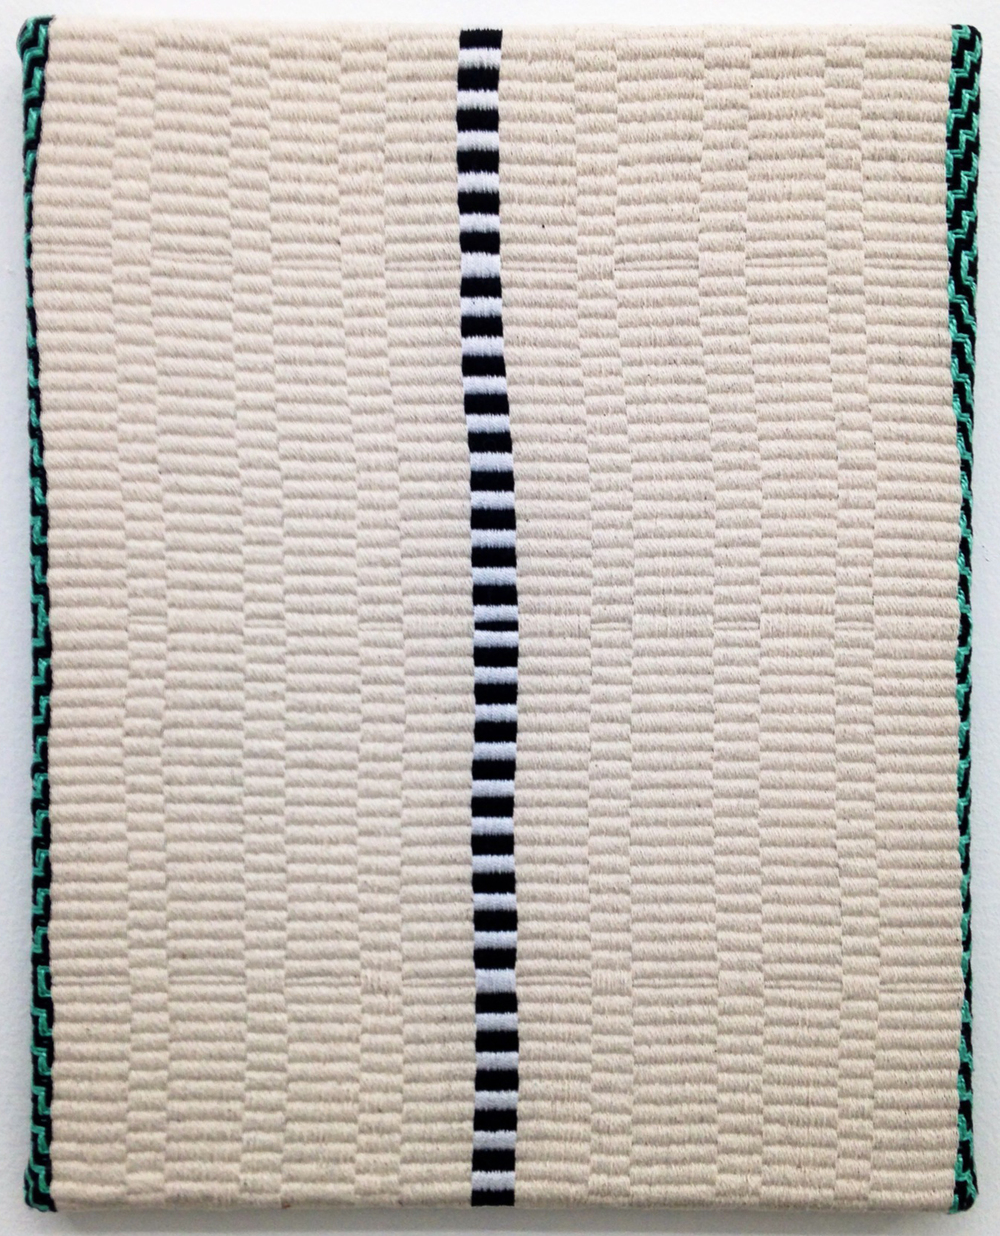 Bittman_06_Untitled_2014_handwoven textile cotton_15x12.jpg